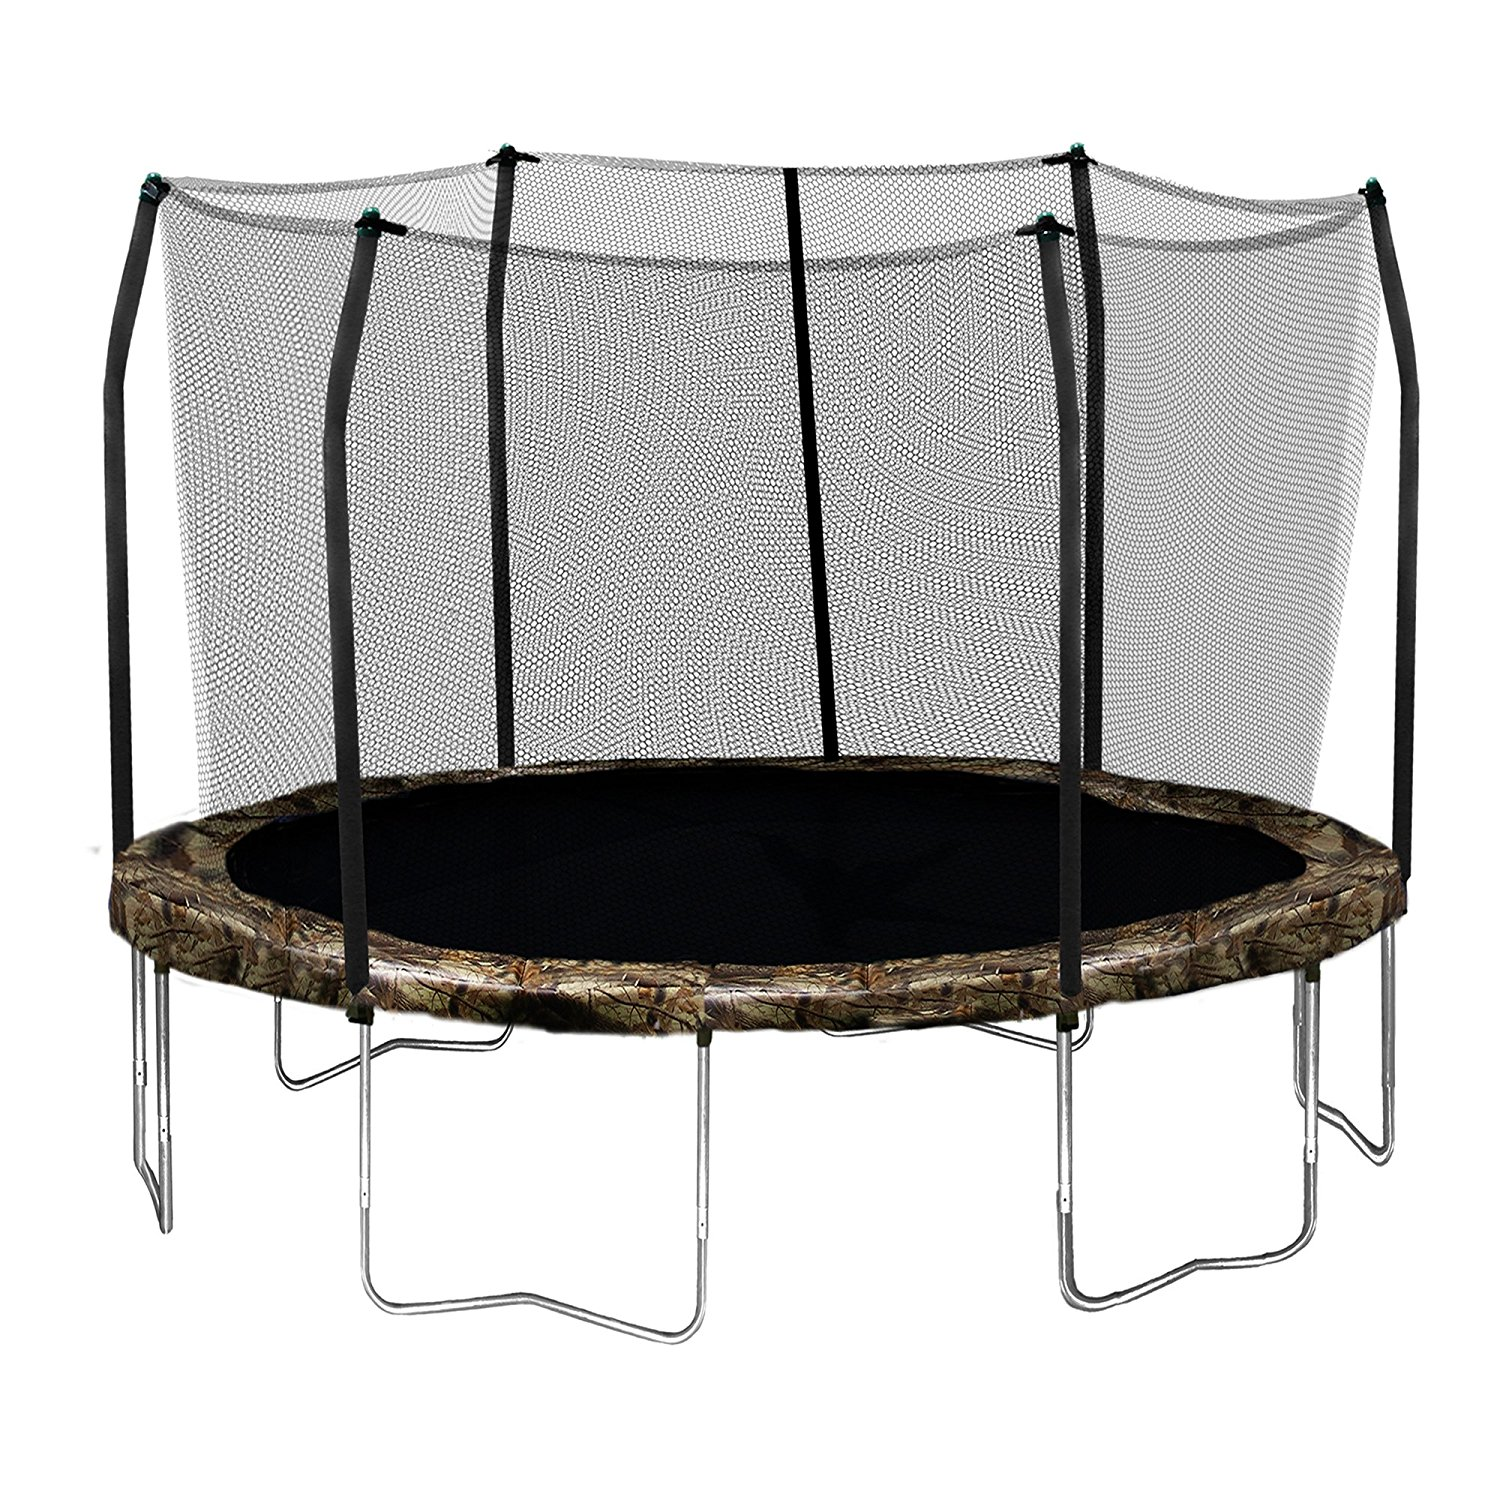 Skywalker 12-Foot Trampoline & Enclosure